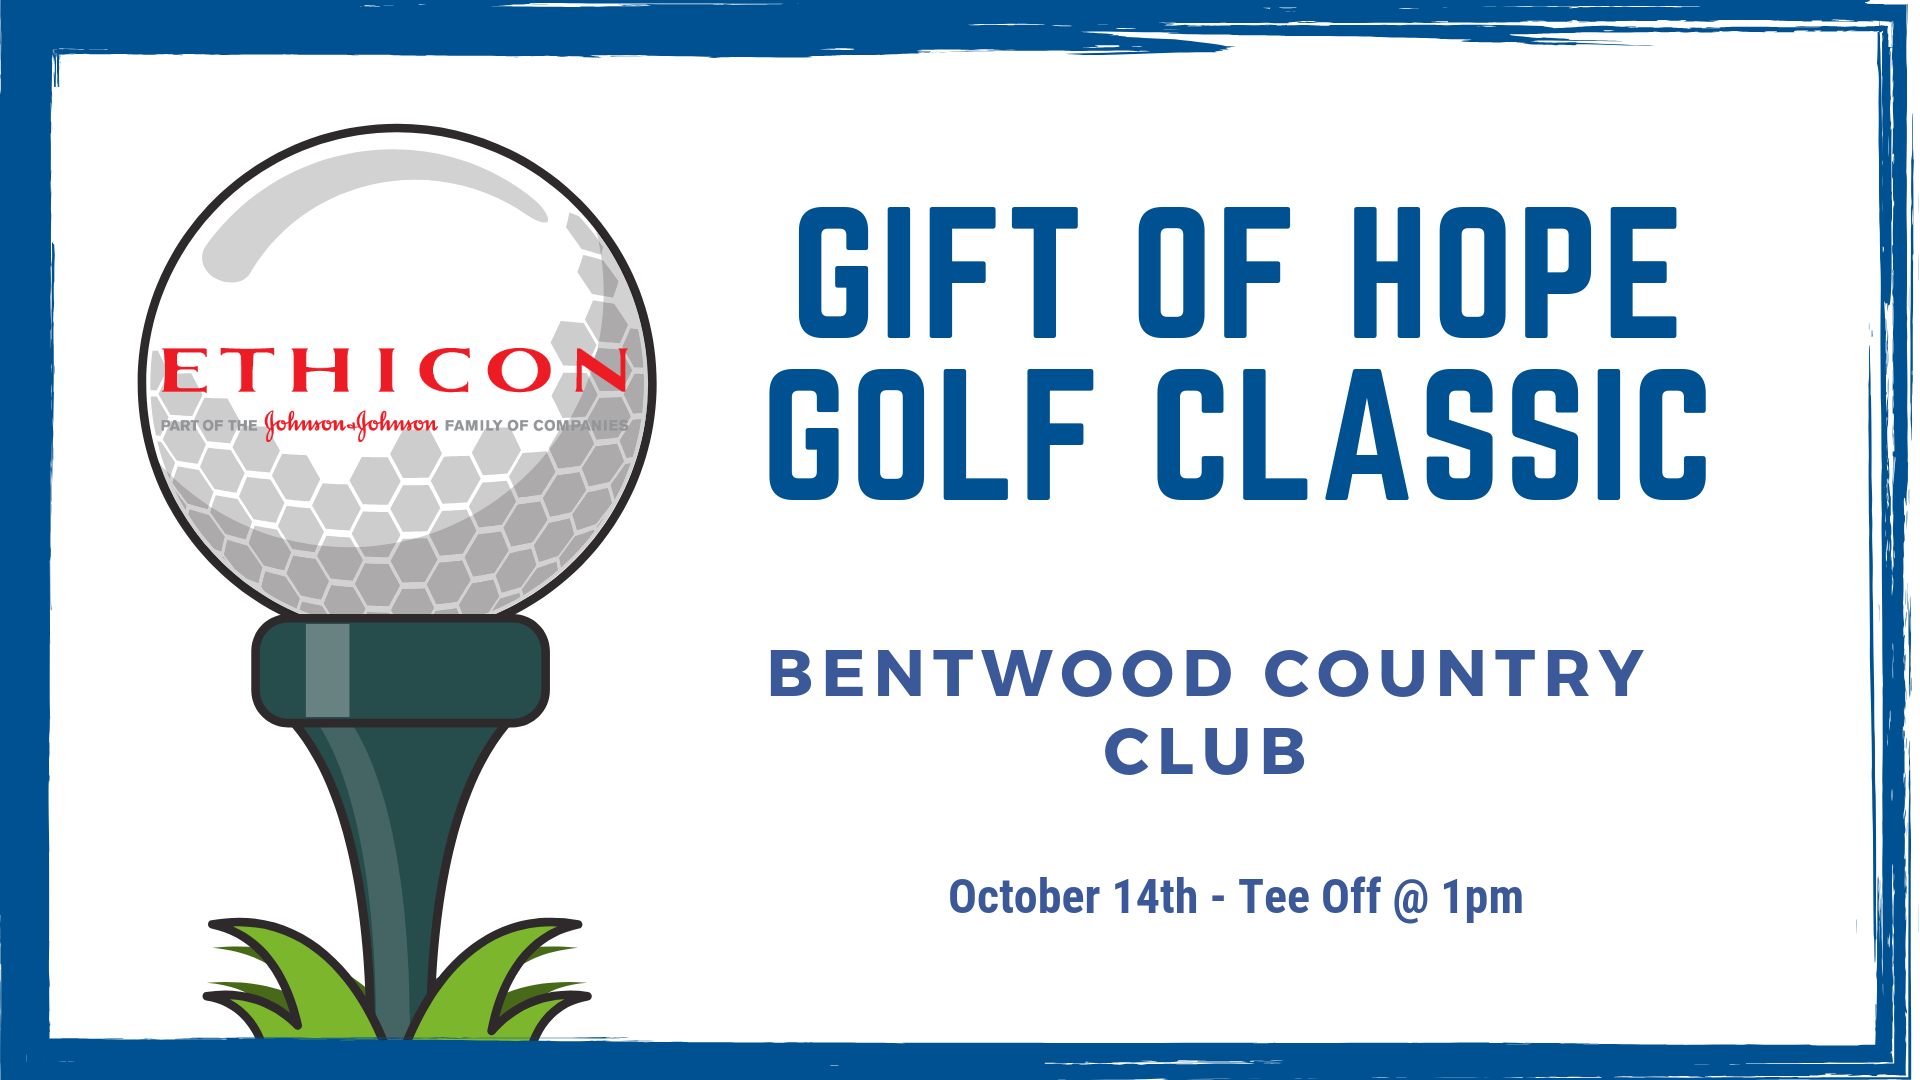 Copy of gift of hope golf classic %281%29